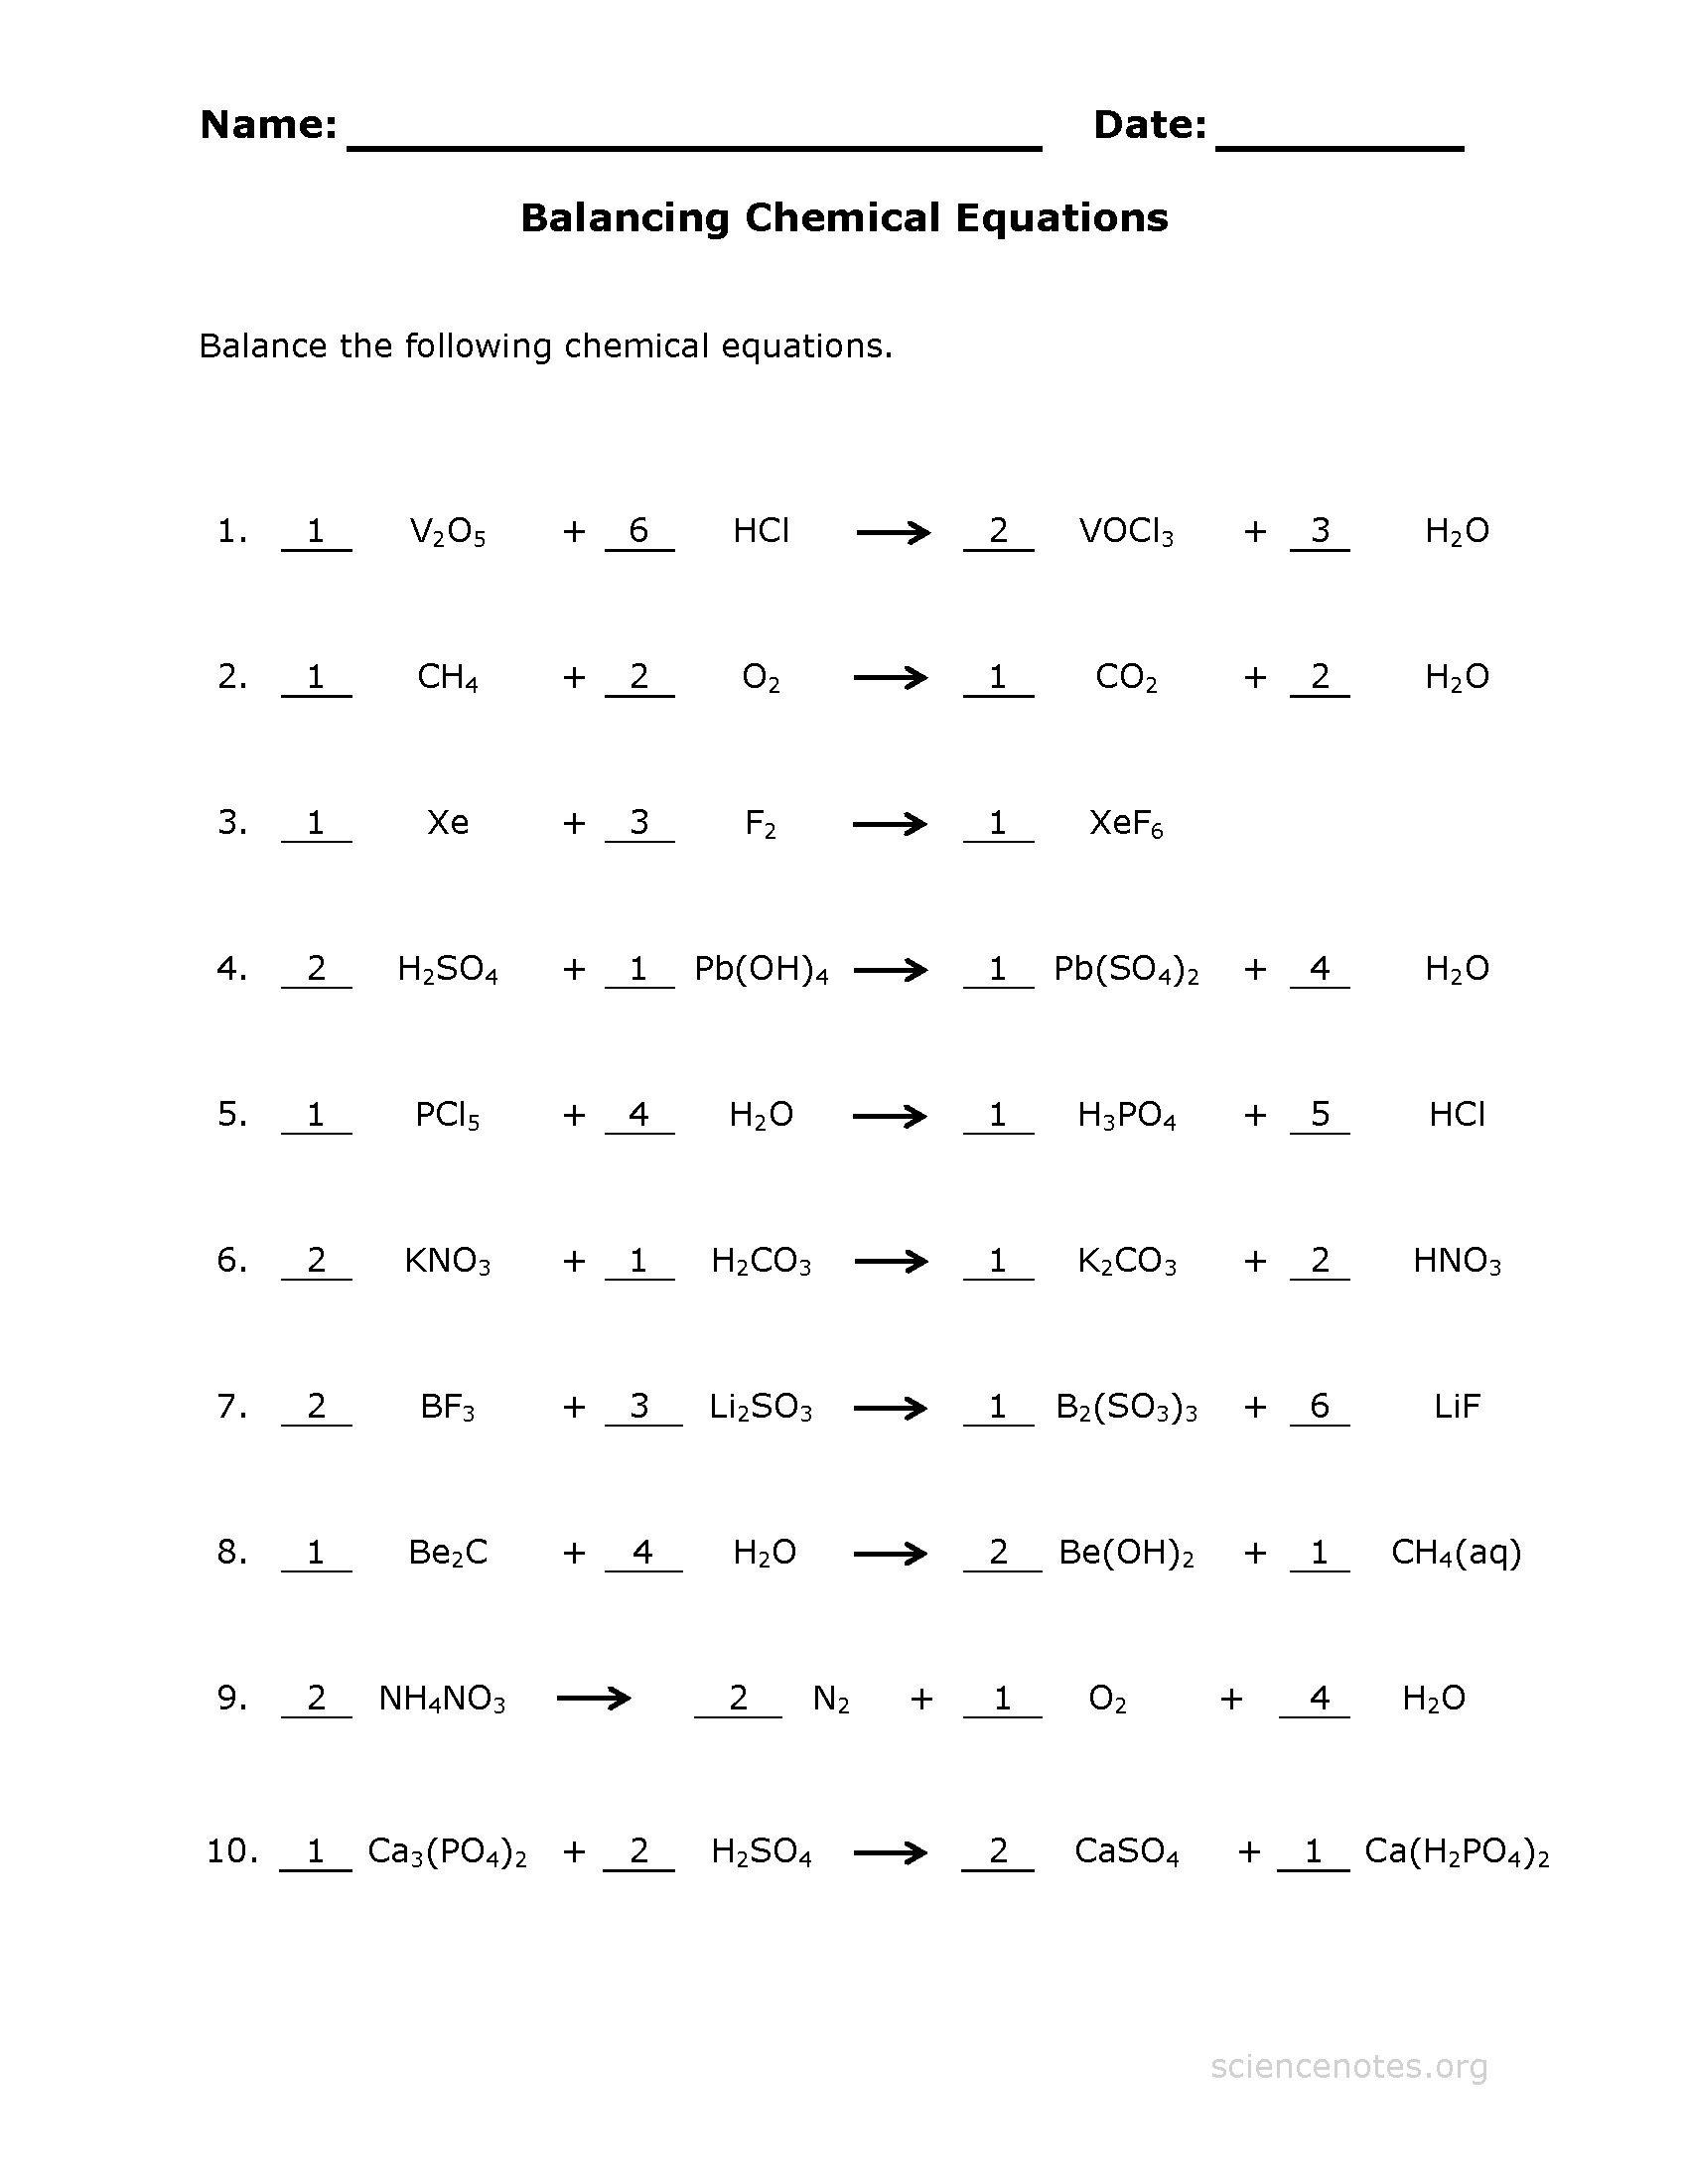 Balance Chemical Equations Worksheet 3 Answer Key